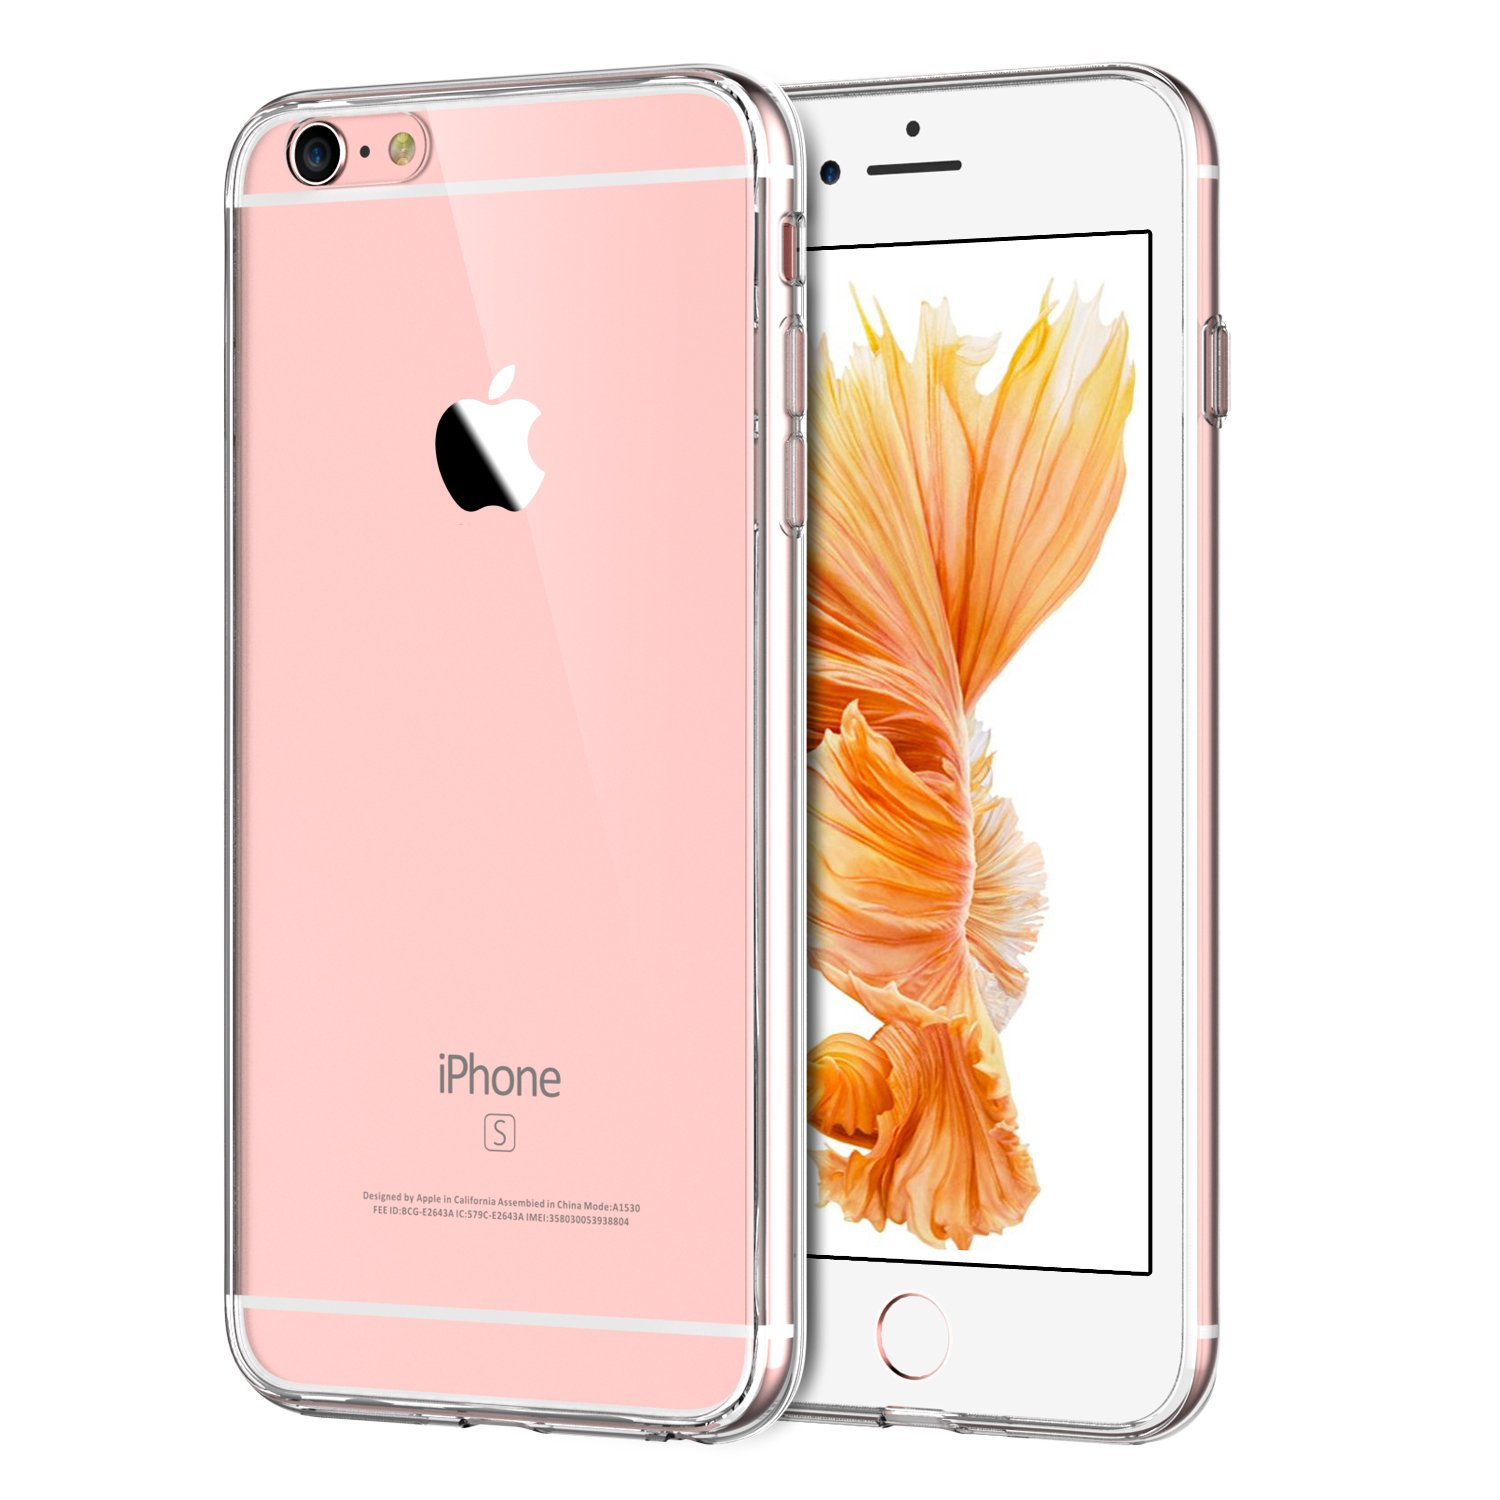 iphone 6s buy iphone 6s h 252 lle jetech apple 6s 6 4 7 h 252 lle tasche 11467